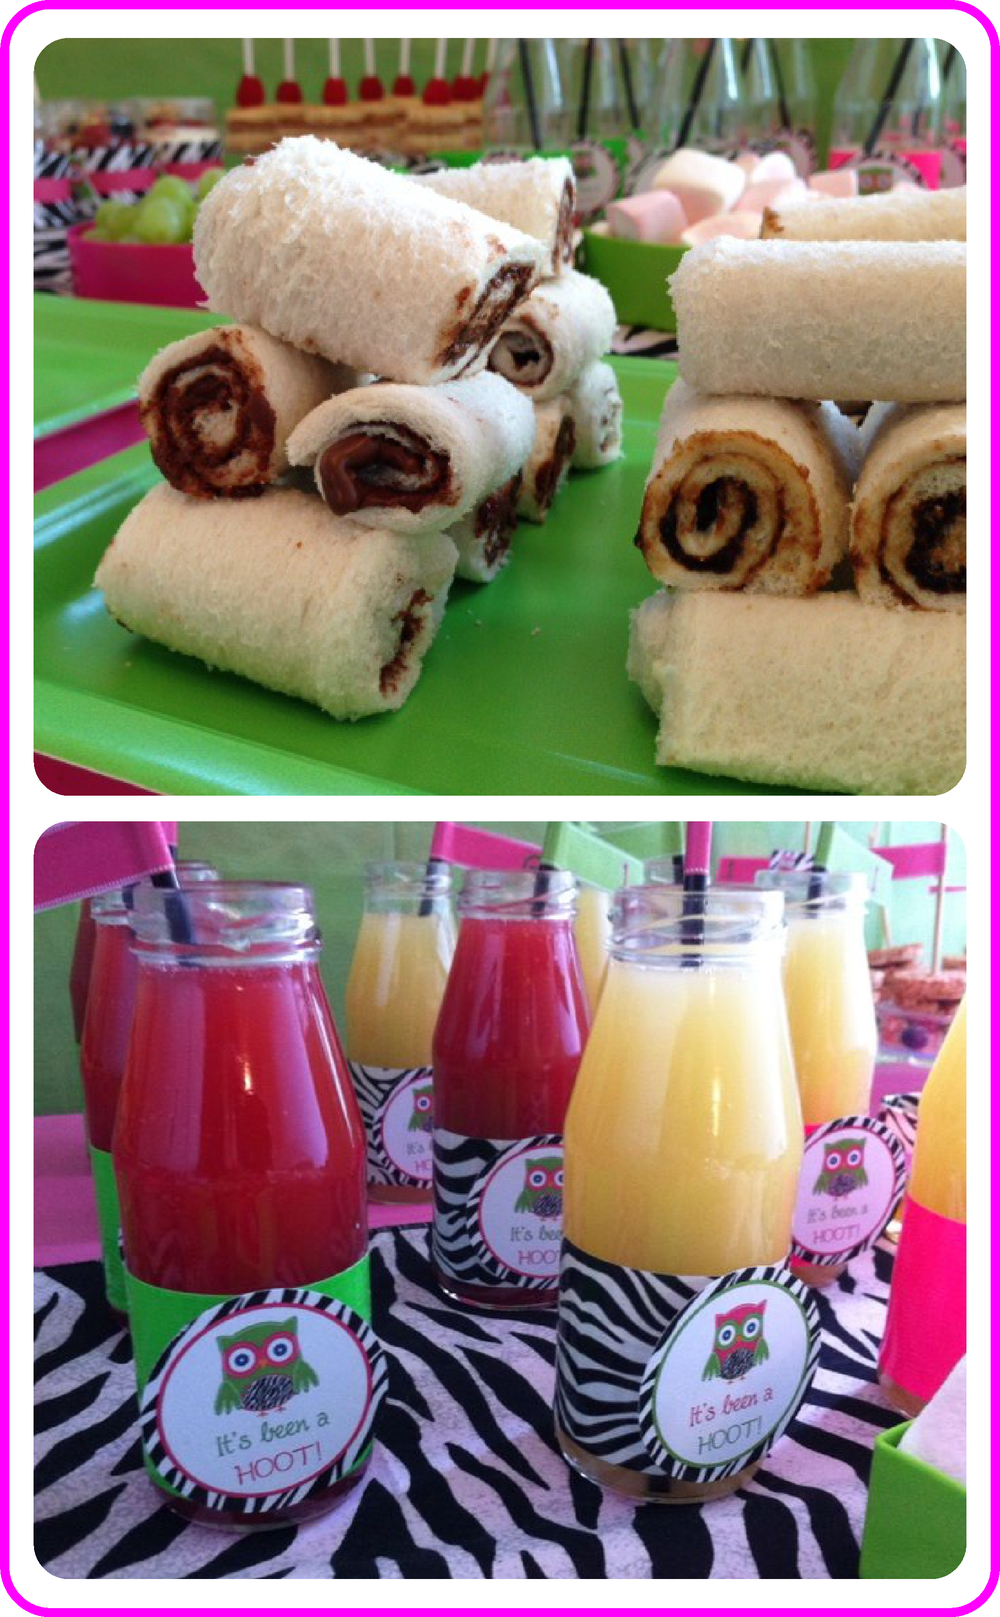 Nutella Sandwich Sushi Rolls Fruit Smoothies